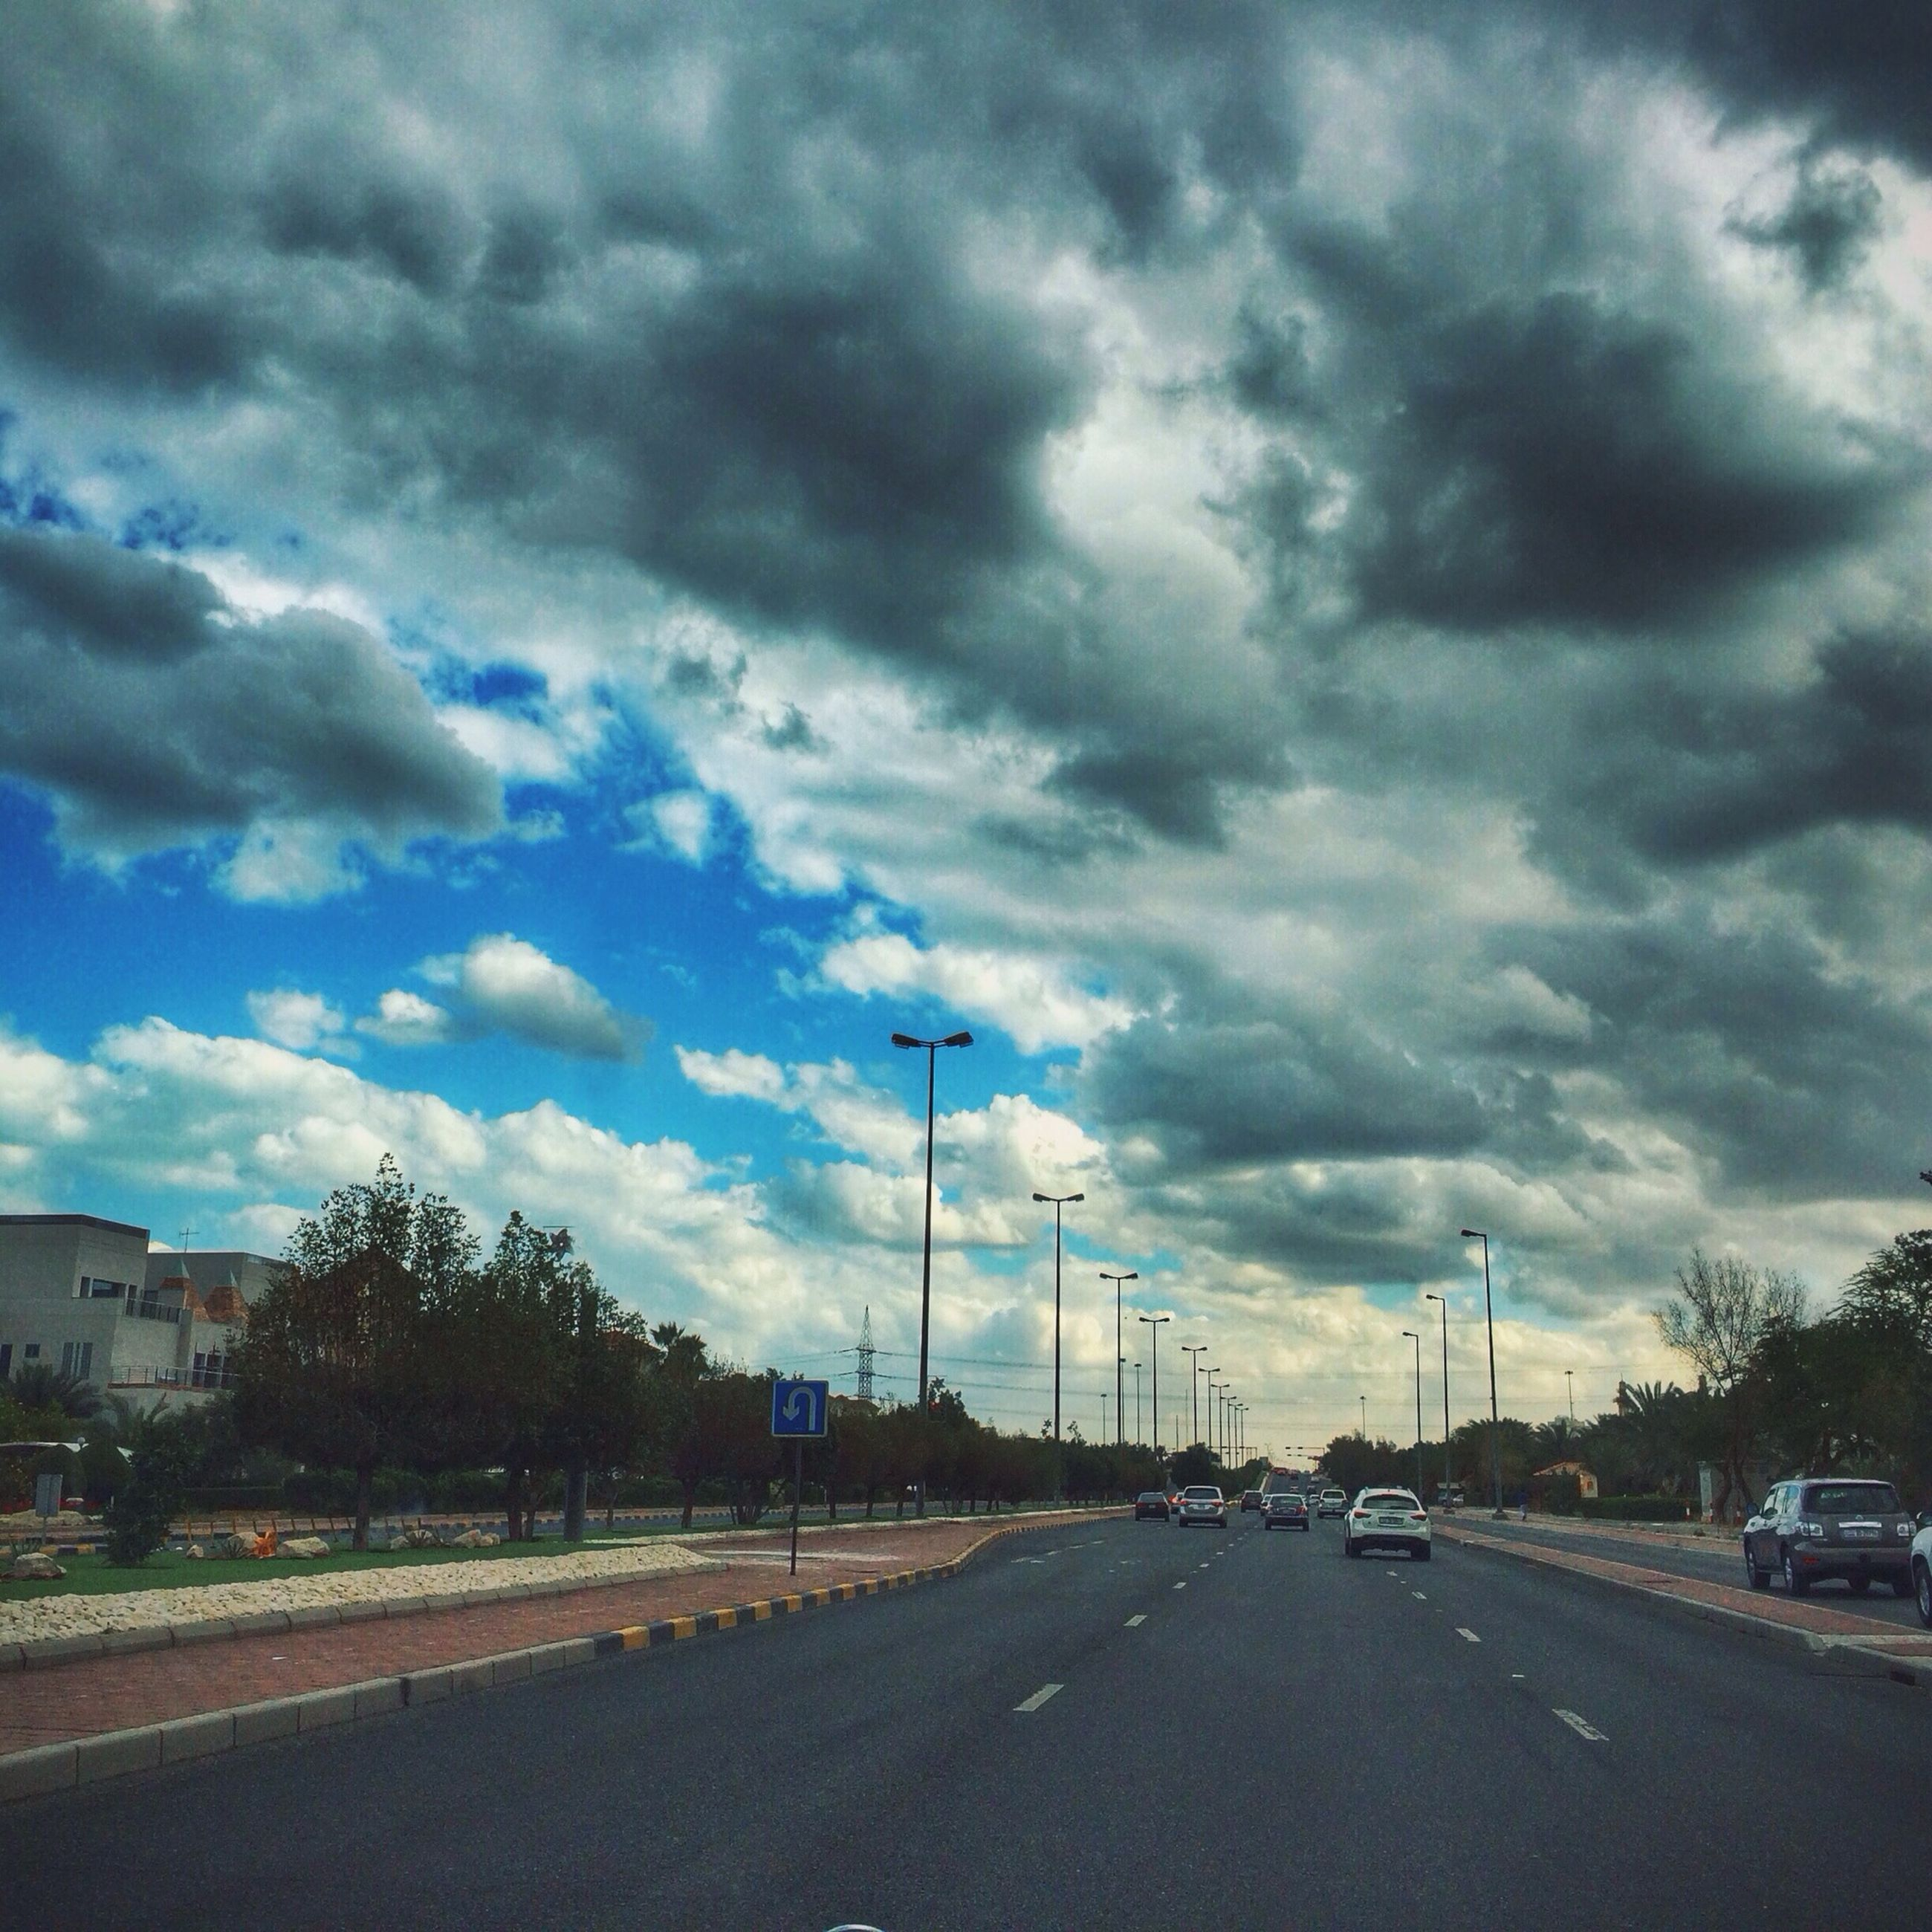 transportation, road, sky, cloud - sky, the way forward, car, road marking, cloudy, street, land vehicle, diminishing perspective, cloud, street light, vanishing point, mode of transport, overcast, asphalt, outdoors, empty, highway